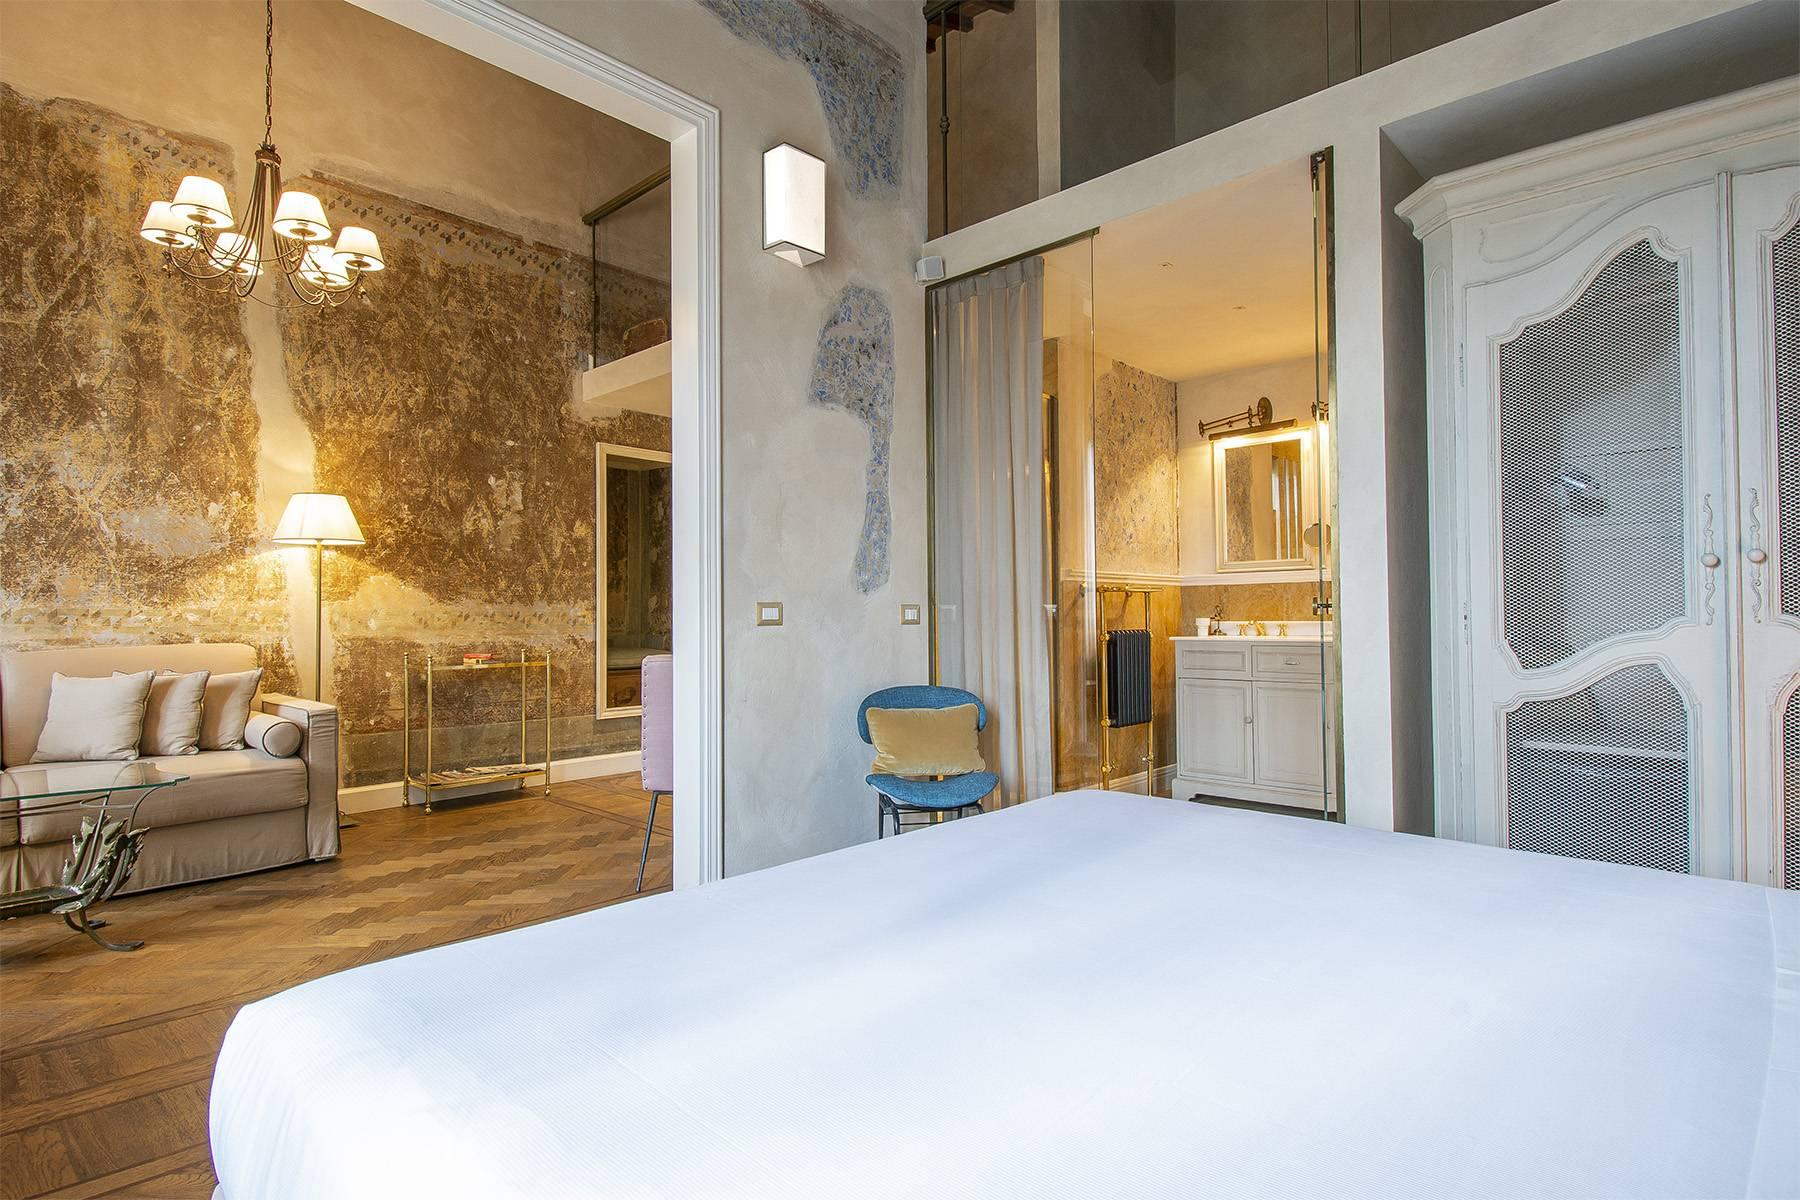 Amazing 600sqm turn-key boutique hotel in the heart of town - 19